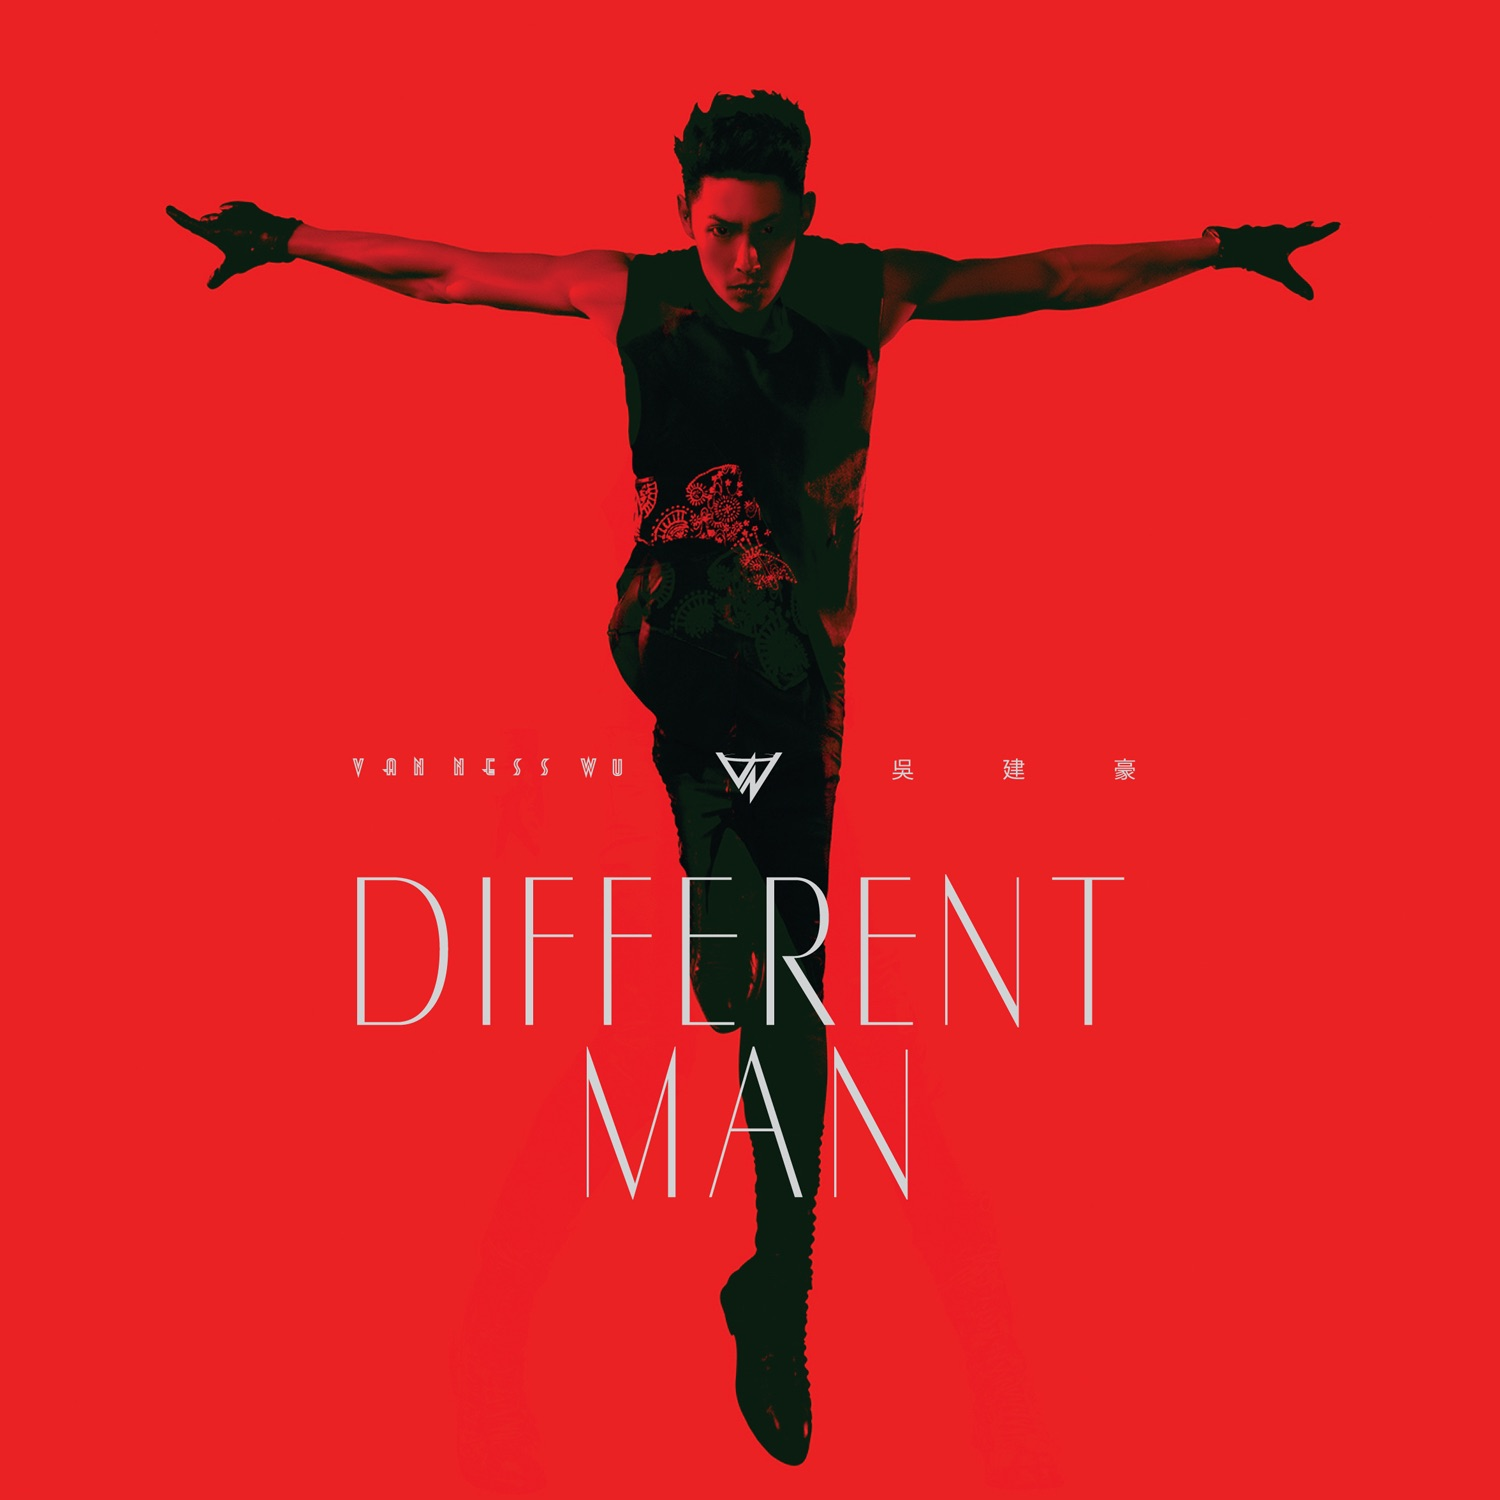 Different Man